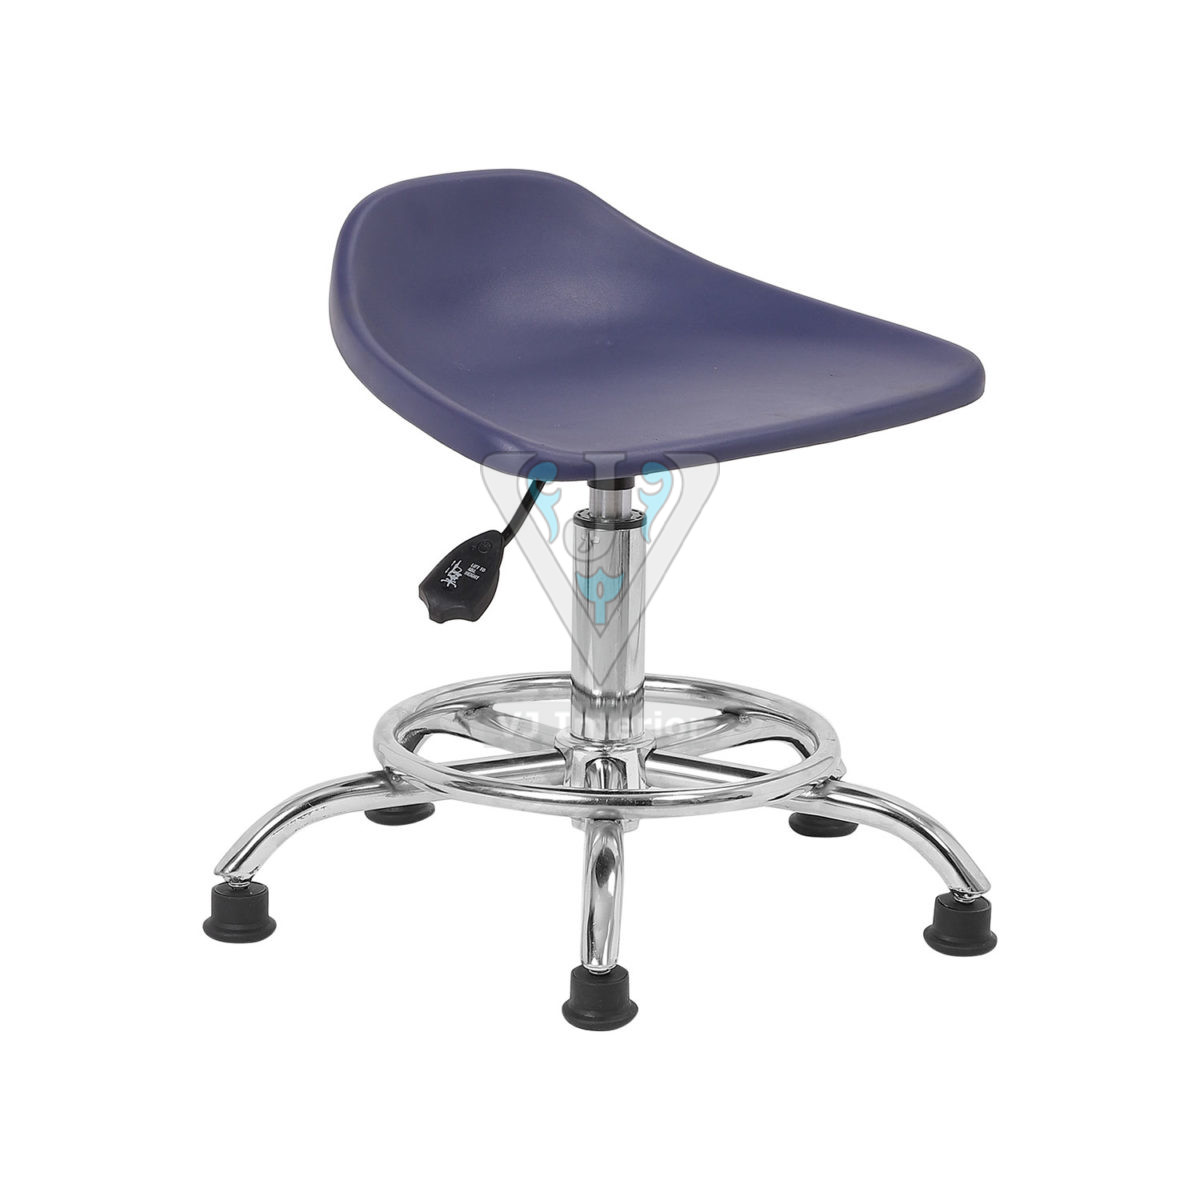 PLASTIC STOOL IN BLUE COLOR